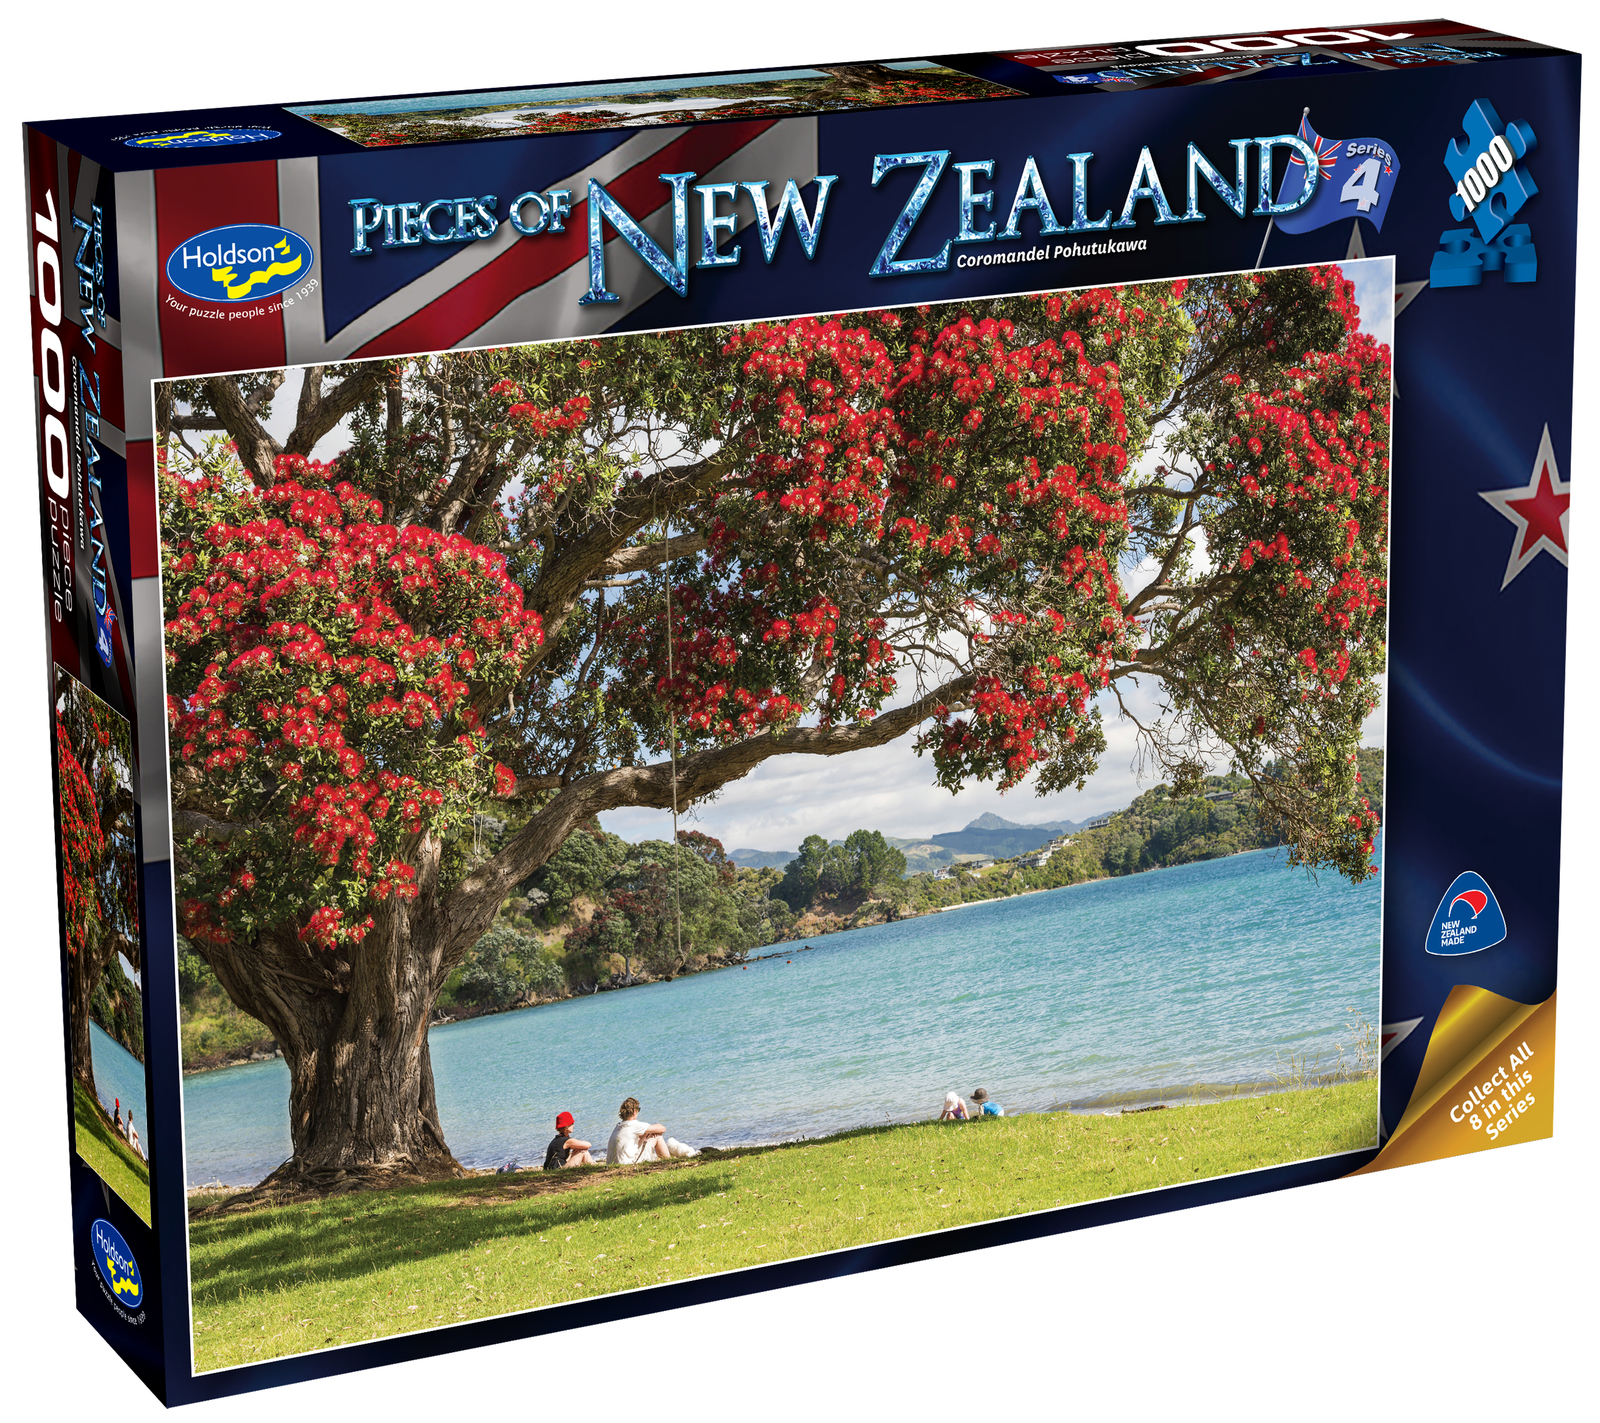 Holdson: Pieces of New Zealand - Series 4 - Coromandel Pohutukawa - 1000 Piece Puzzle image